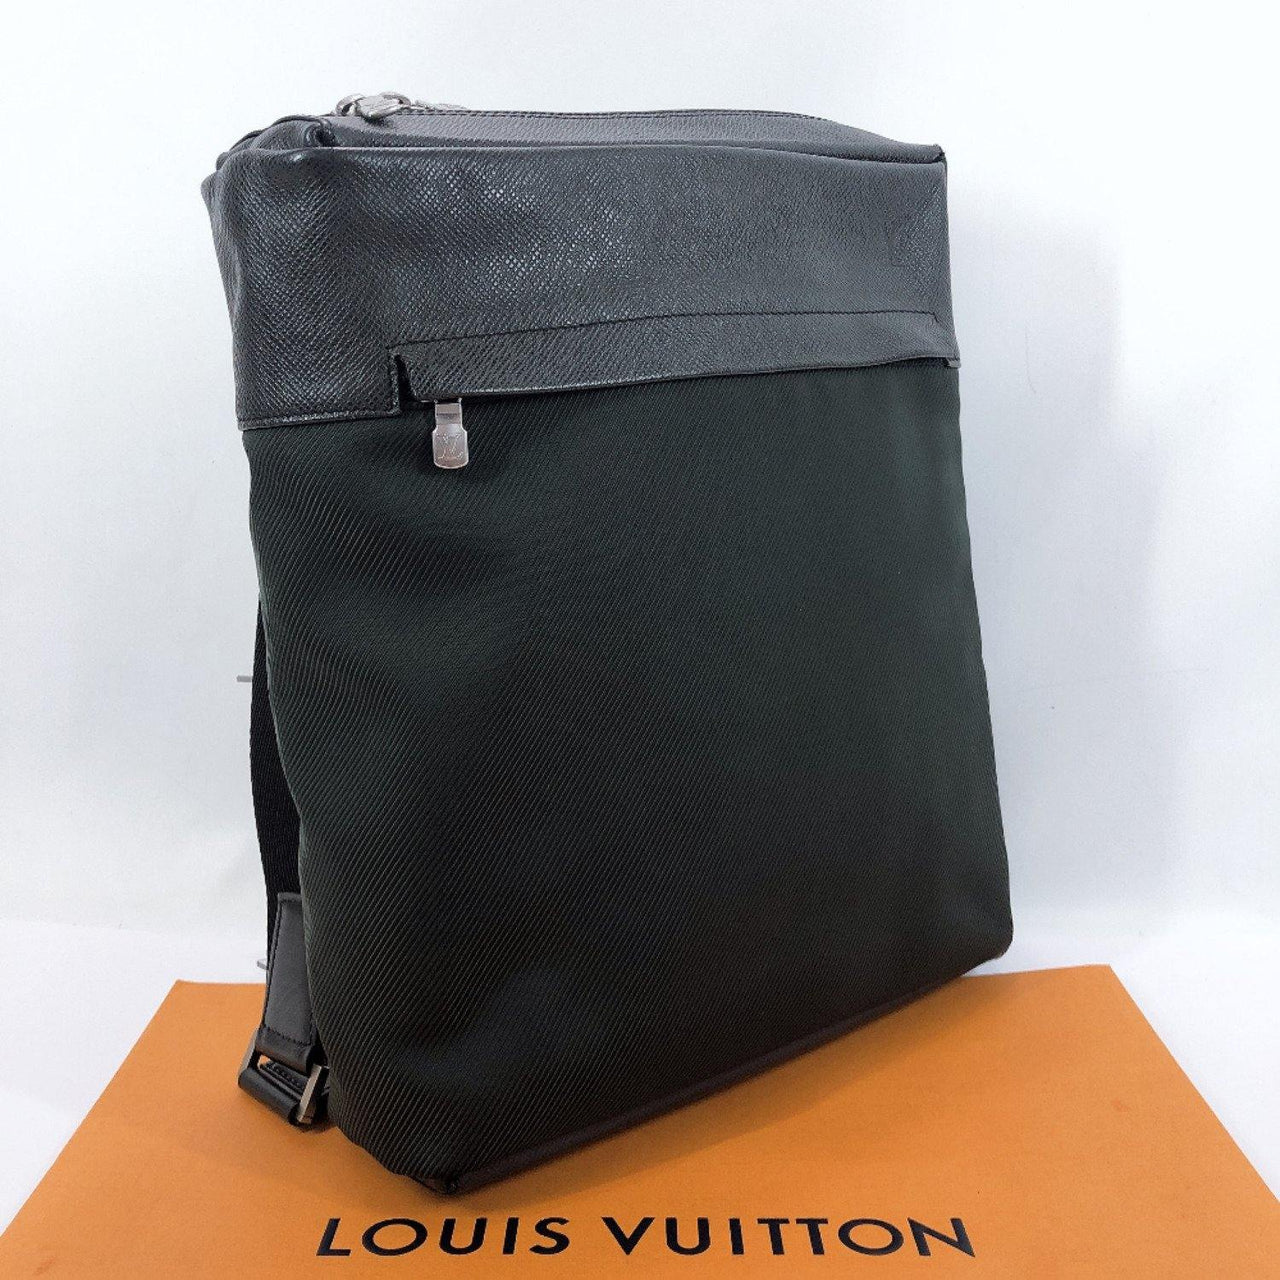 LOUIS VUITTON Shoulder Bag M30912 Beluga Taiga green mens Used